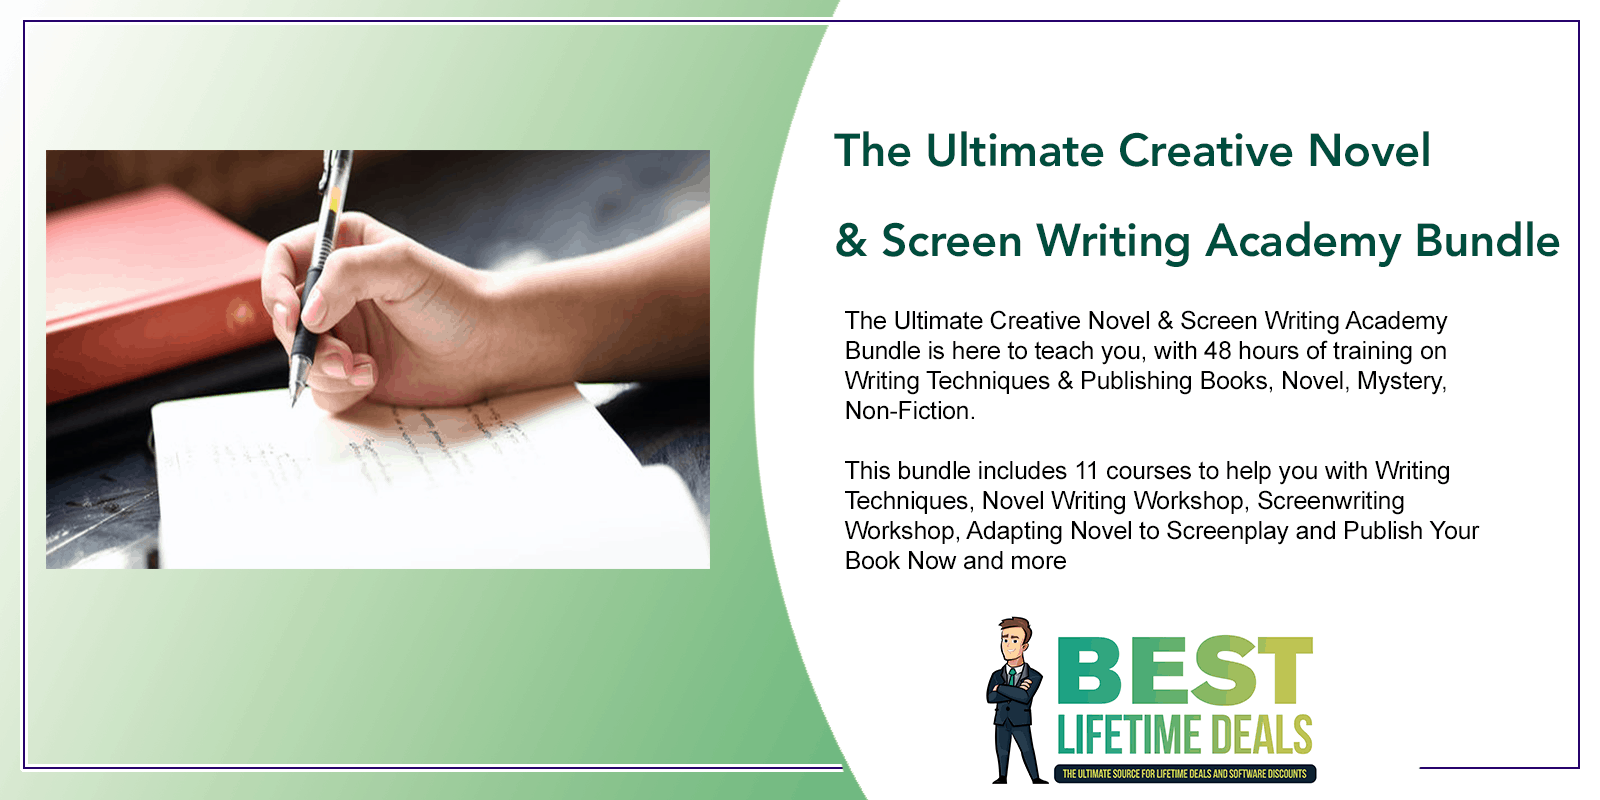 The Ultimate Creative Novel Screen Writing Academy Featured Image